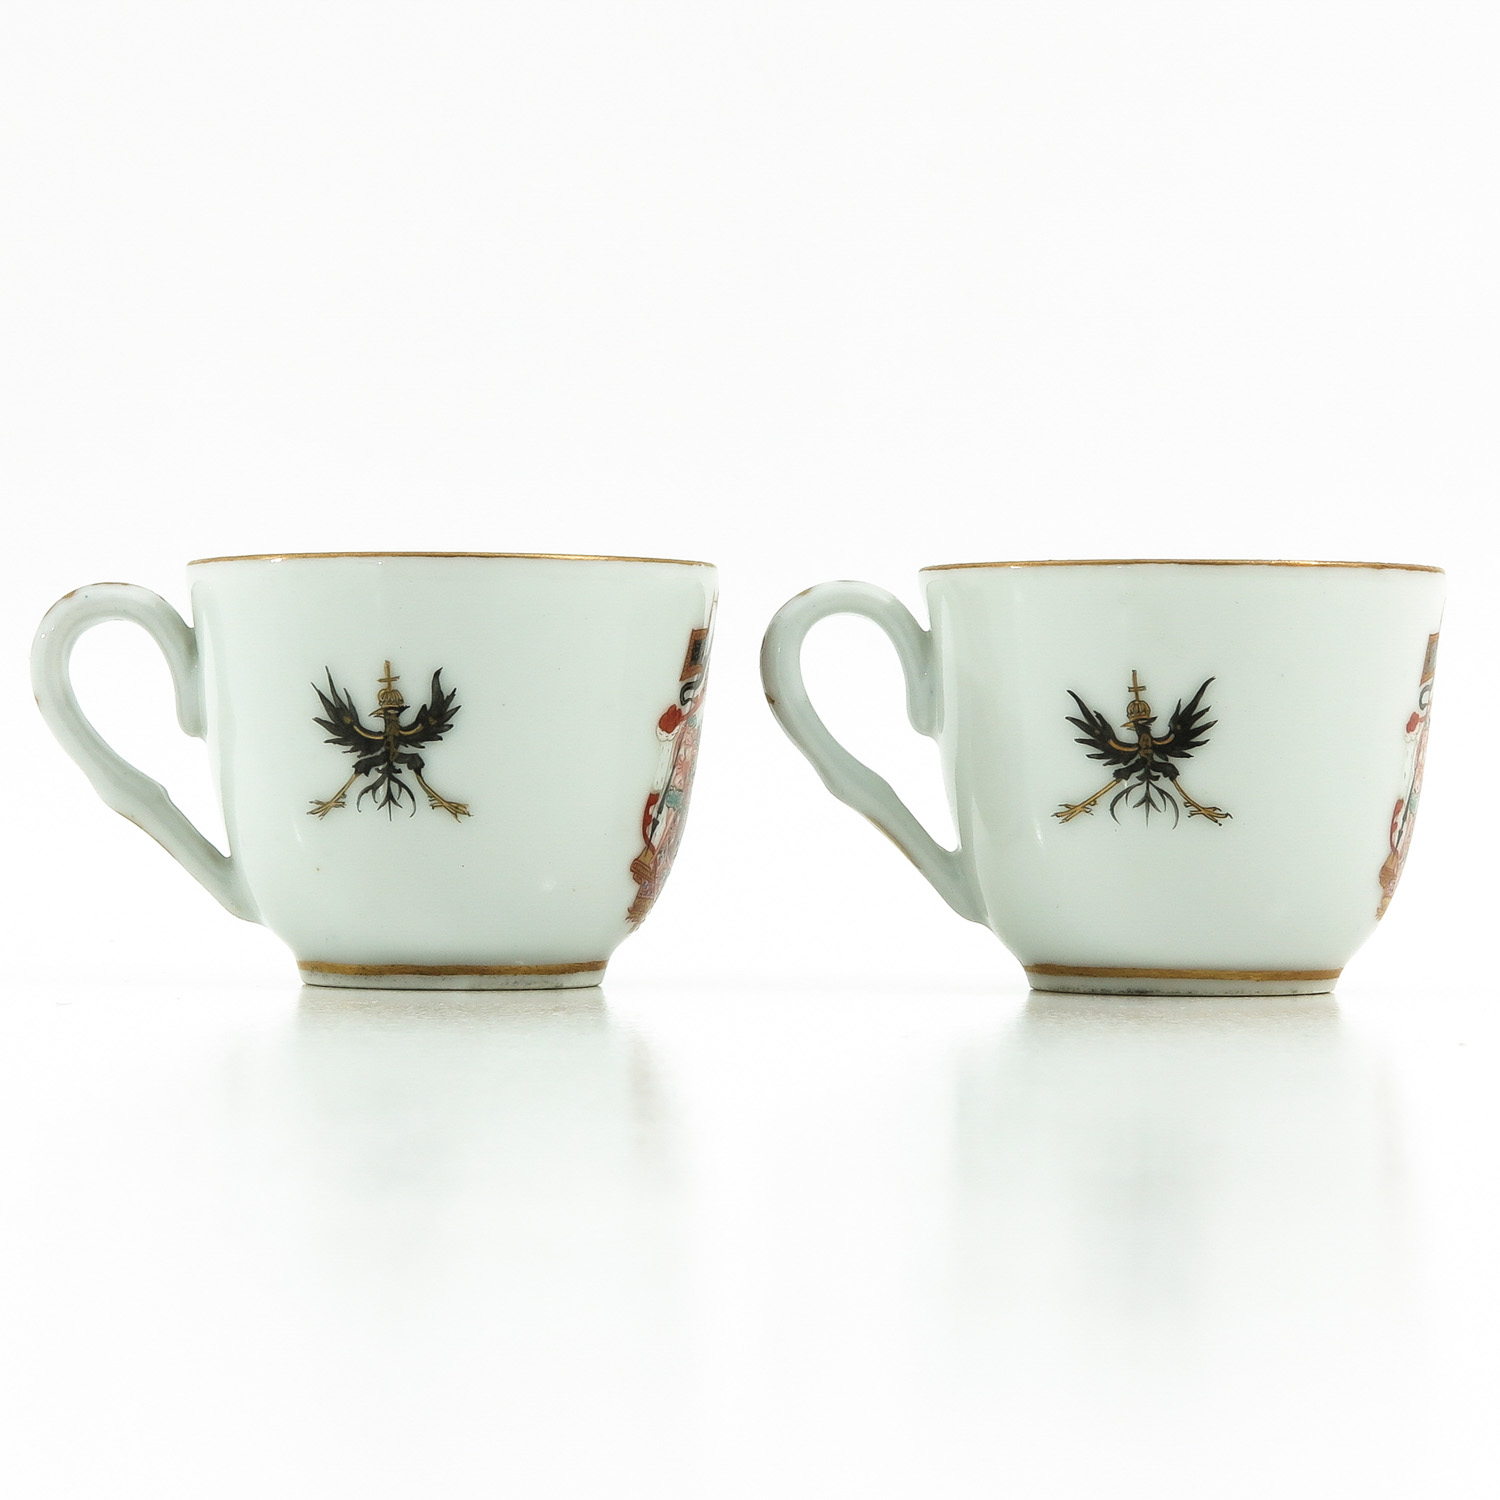 A Pair of Polychrome Decor Cups - Image 3 of 9